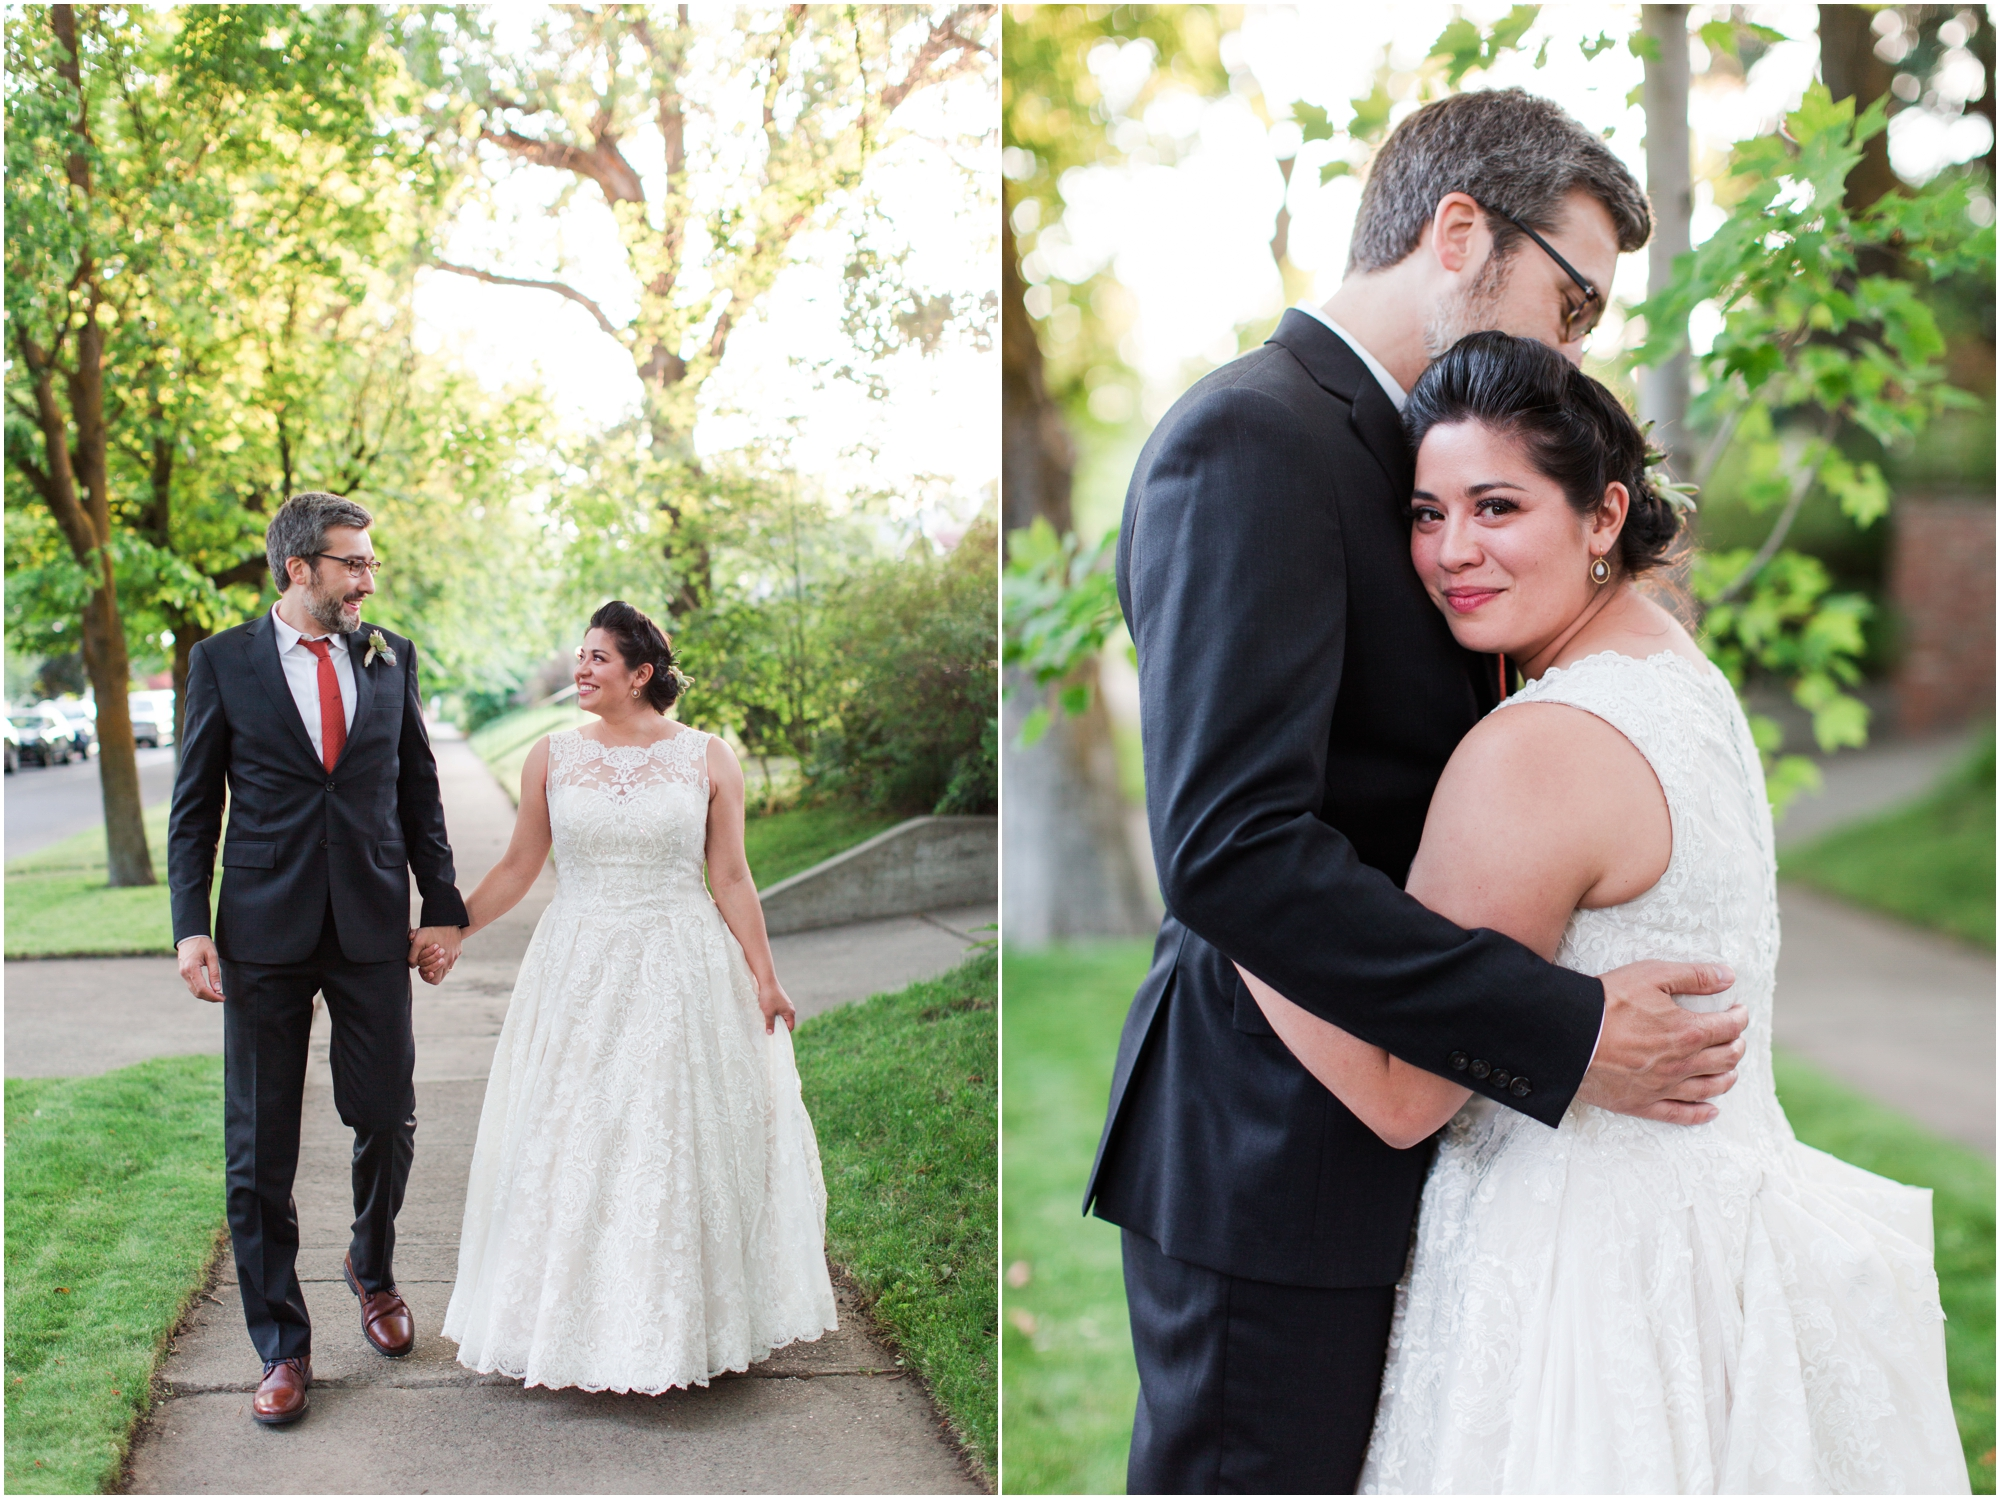 Garden wedding in Ellensburg, WA. Photos by Briana Calderon Photography based in the greater Seattle-Tacoma Area._1285.jpg